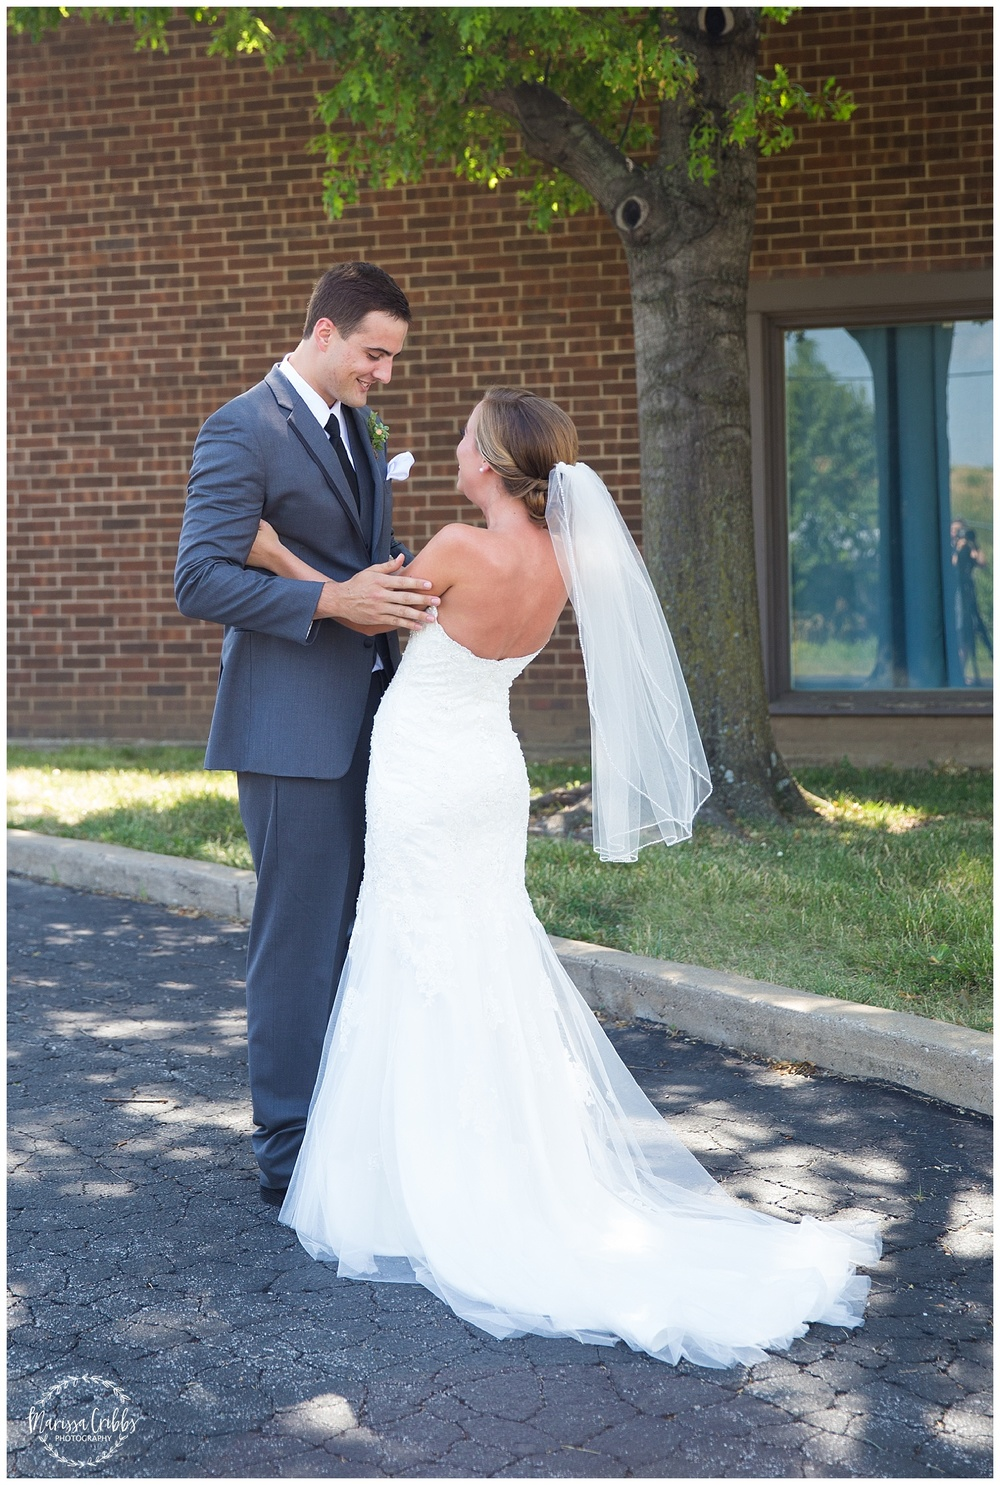 Twin Double Wedding | Union Horse Distilling Co. | Marissa Cribbs Photography | KC Weddings_0054.jpg